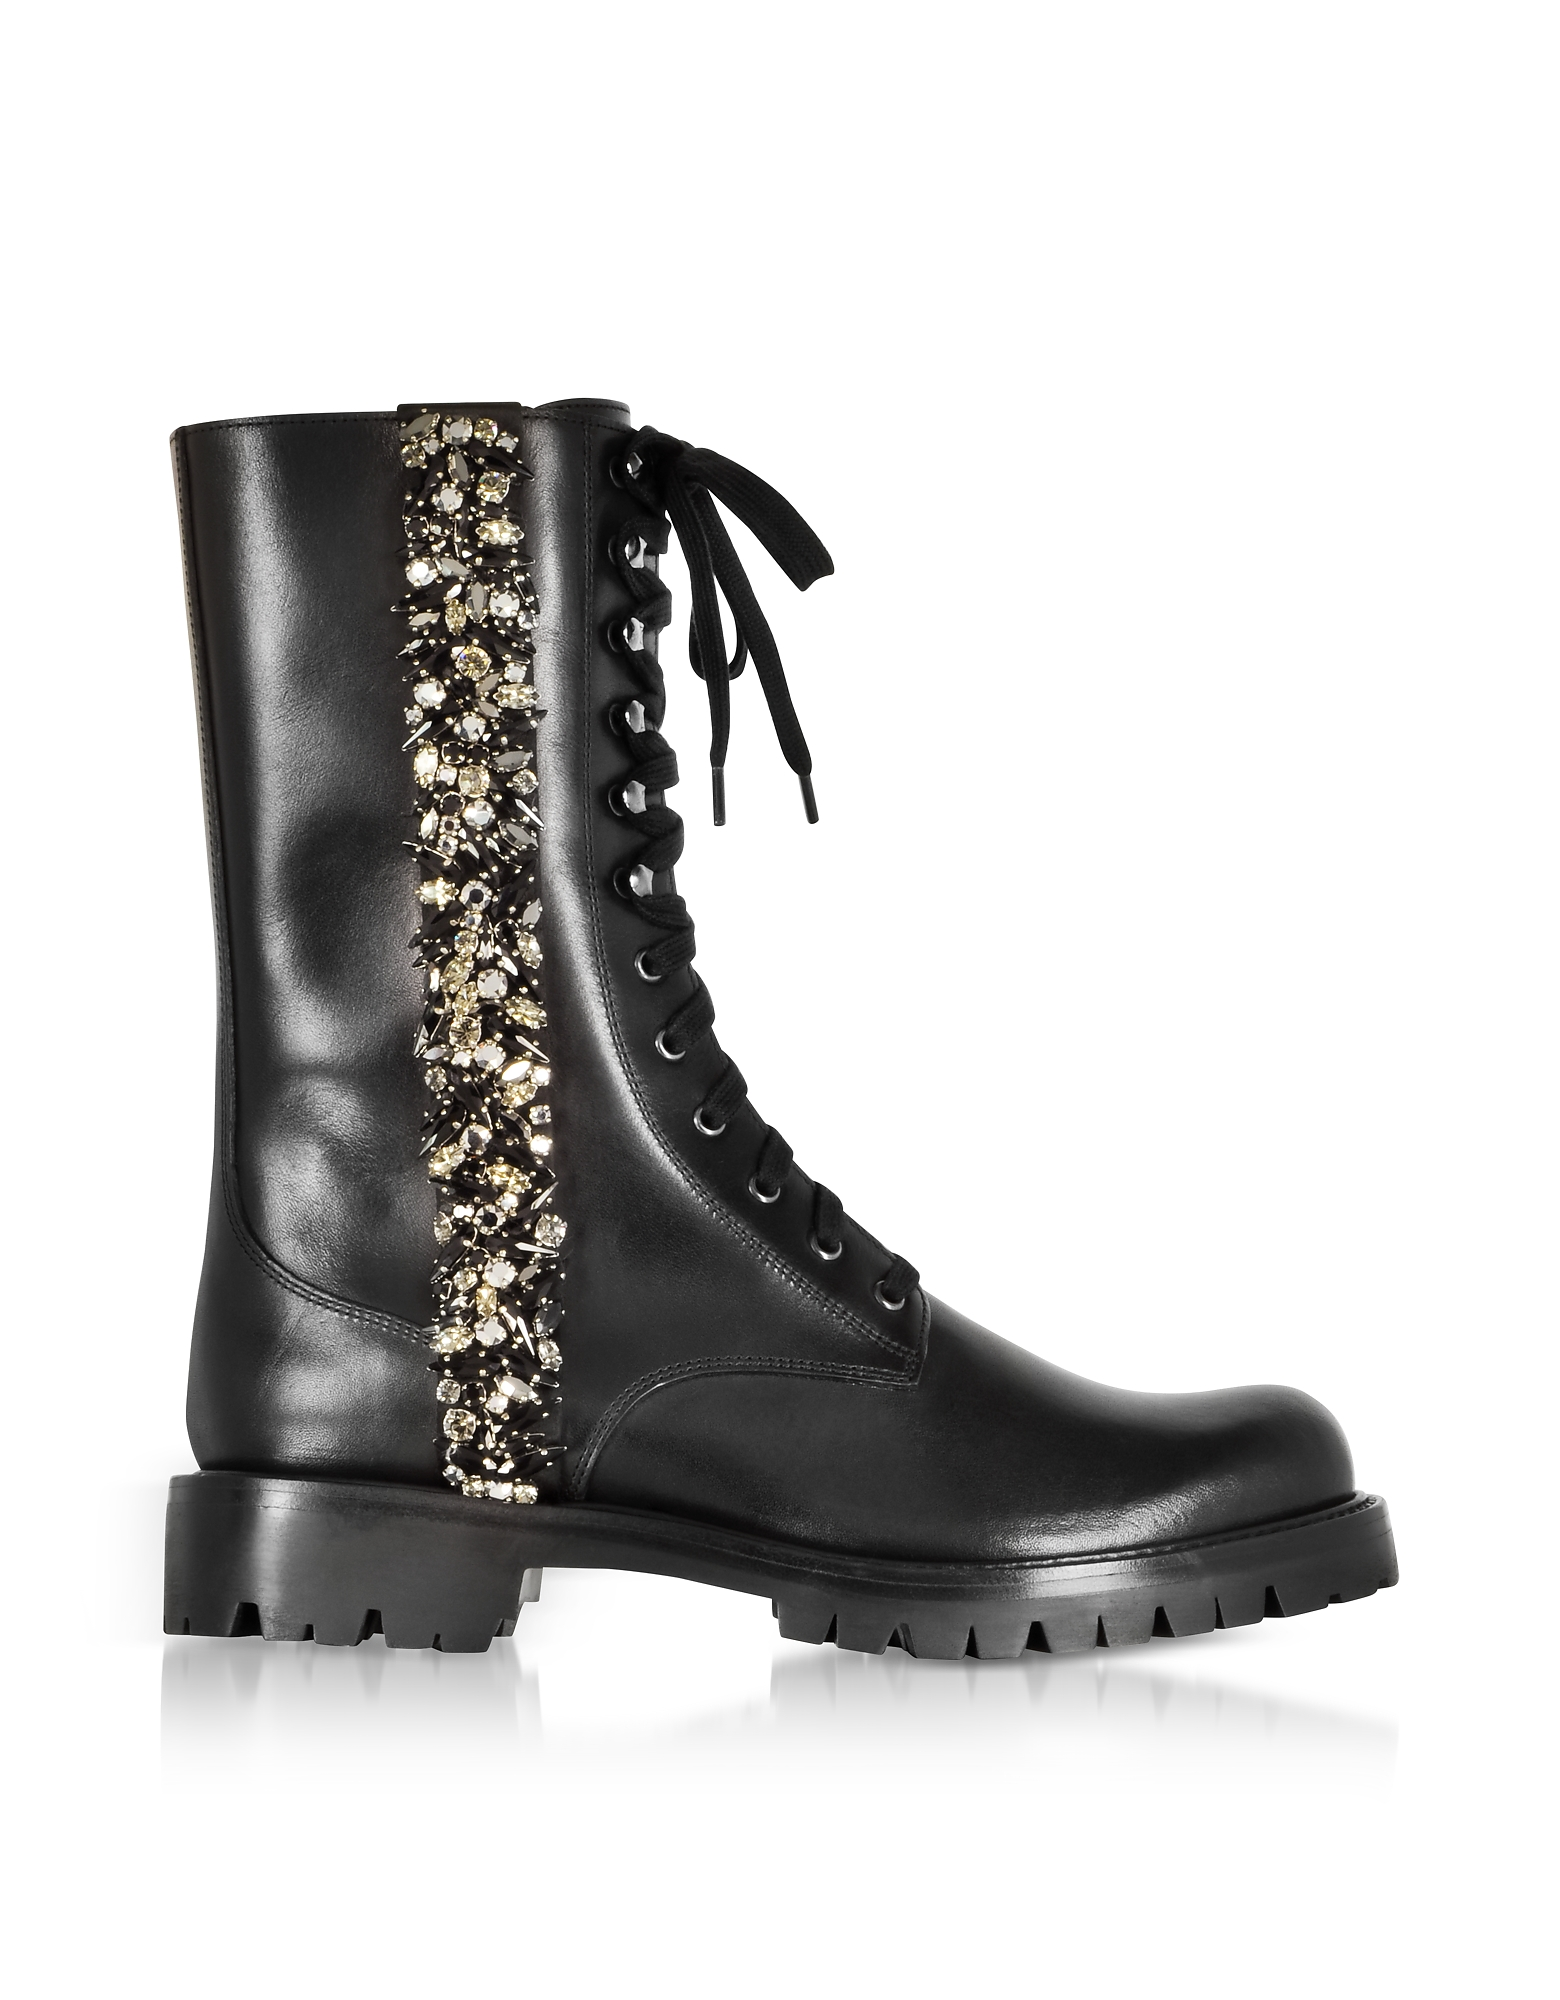 Image of Rene Caovilla Designer Shoes, Black Leather Combat Boots w/Crystals